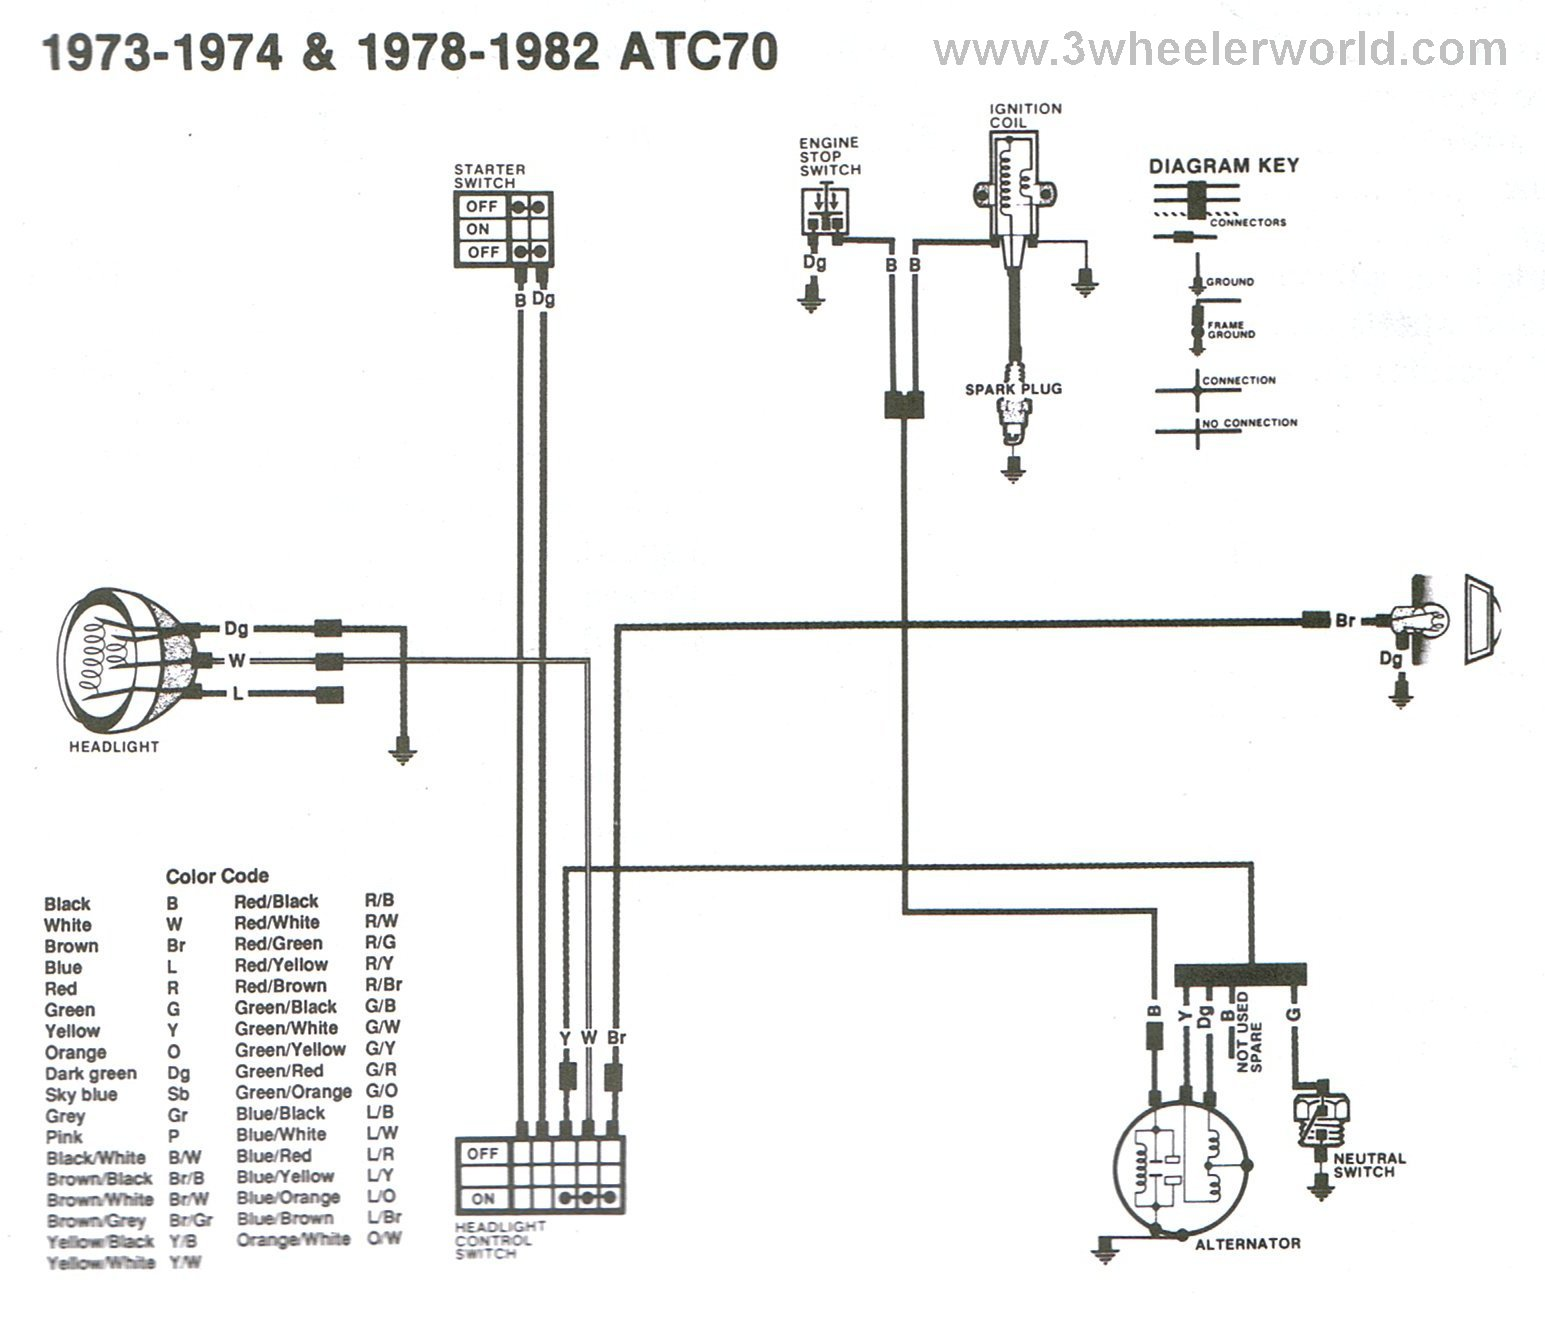 post 4946 1235948993 atc 70 wiring diagram honda 70 talk dumont dune riders honda c70 wiring diagram at honlapkeszites.co